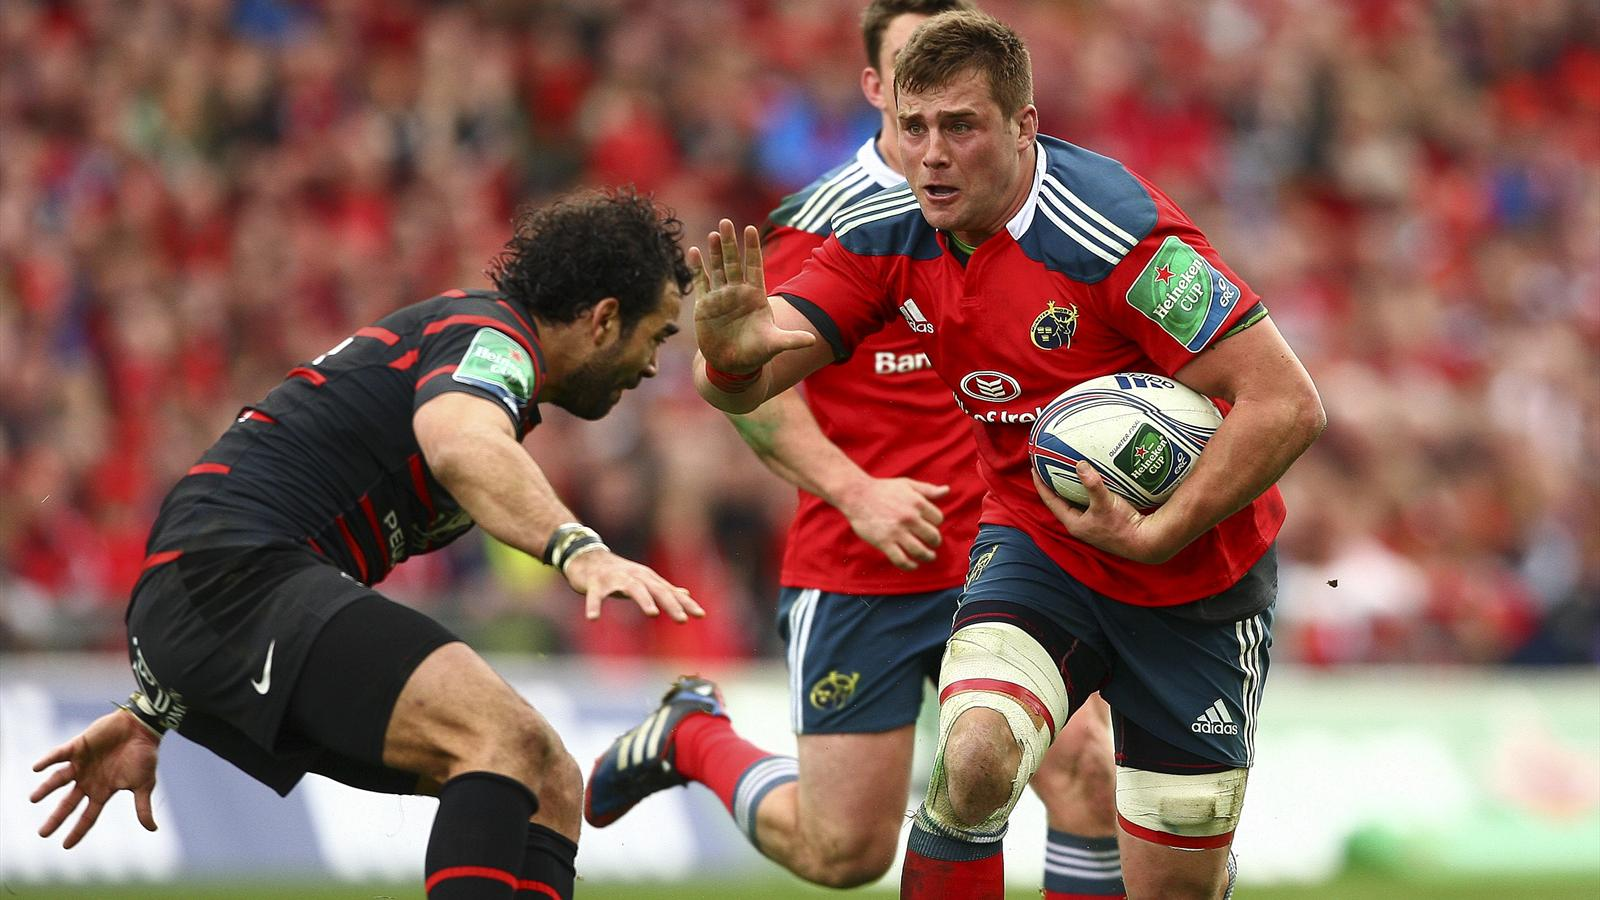 CJ Stander - Munster Toulouse - 5 avril 2014